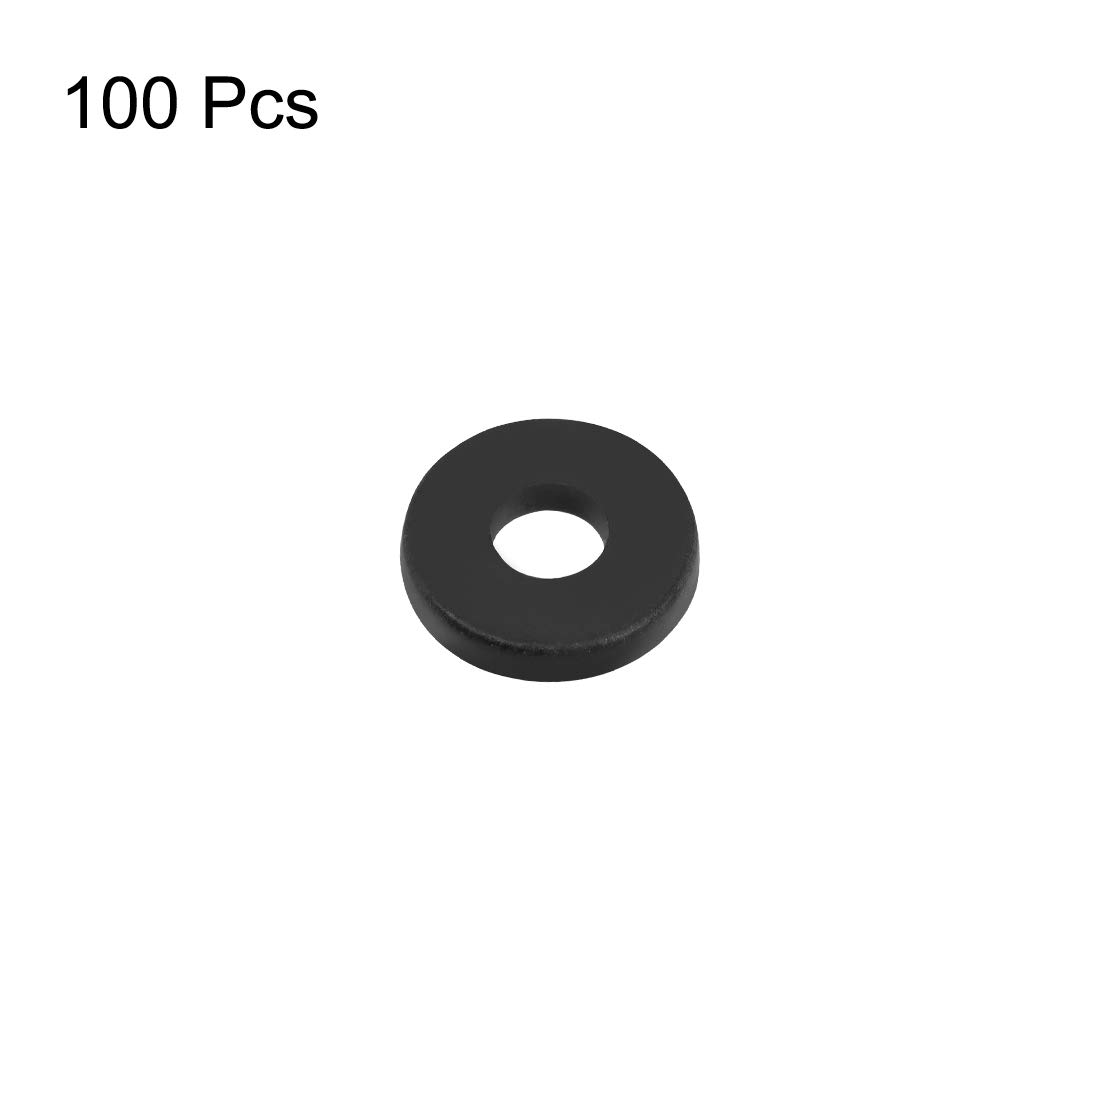 uxcell Nylon Flat Washers for M6 Screw Bolt 12mm OD 1.5mm Thick 100PCS